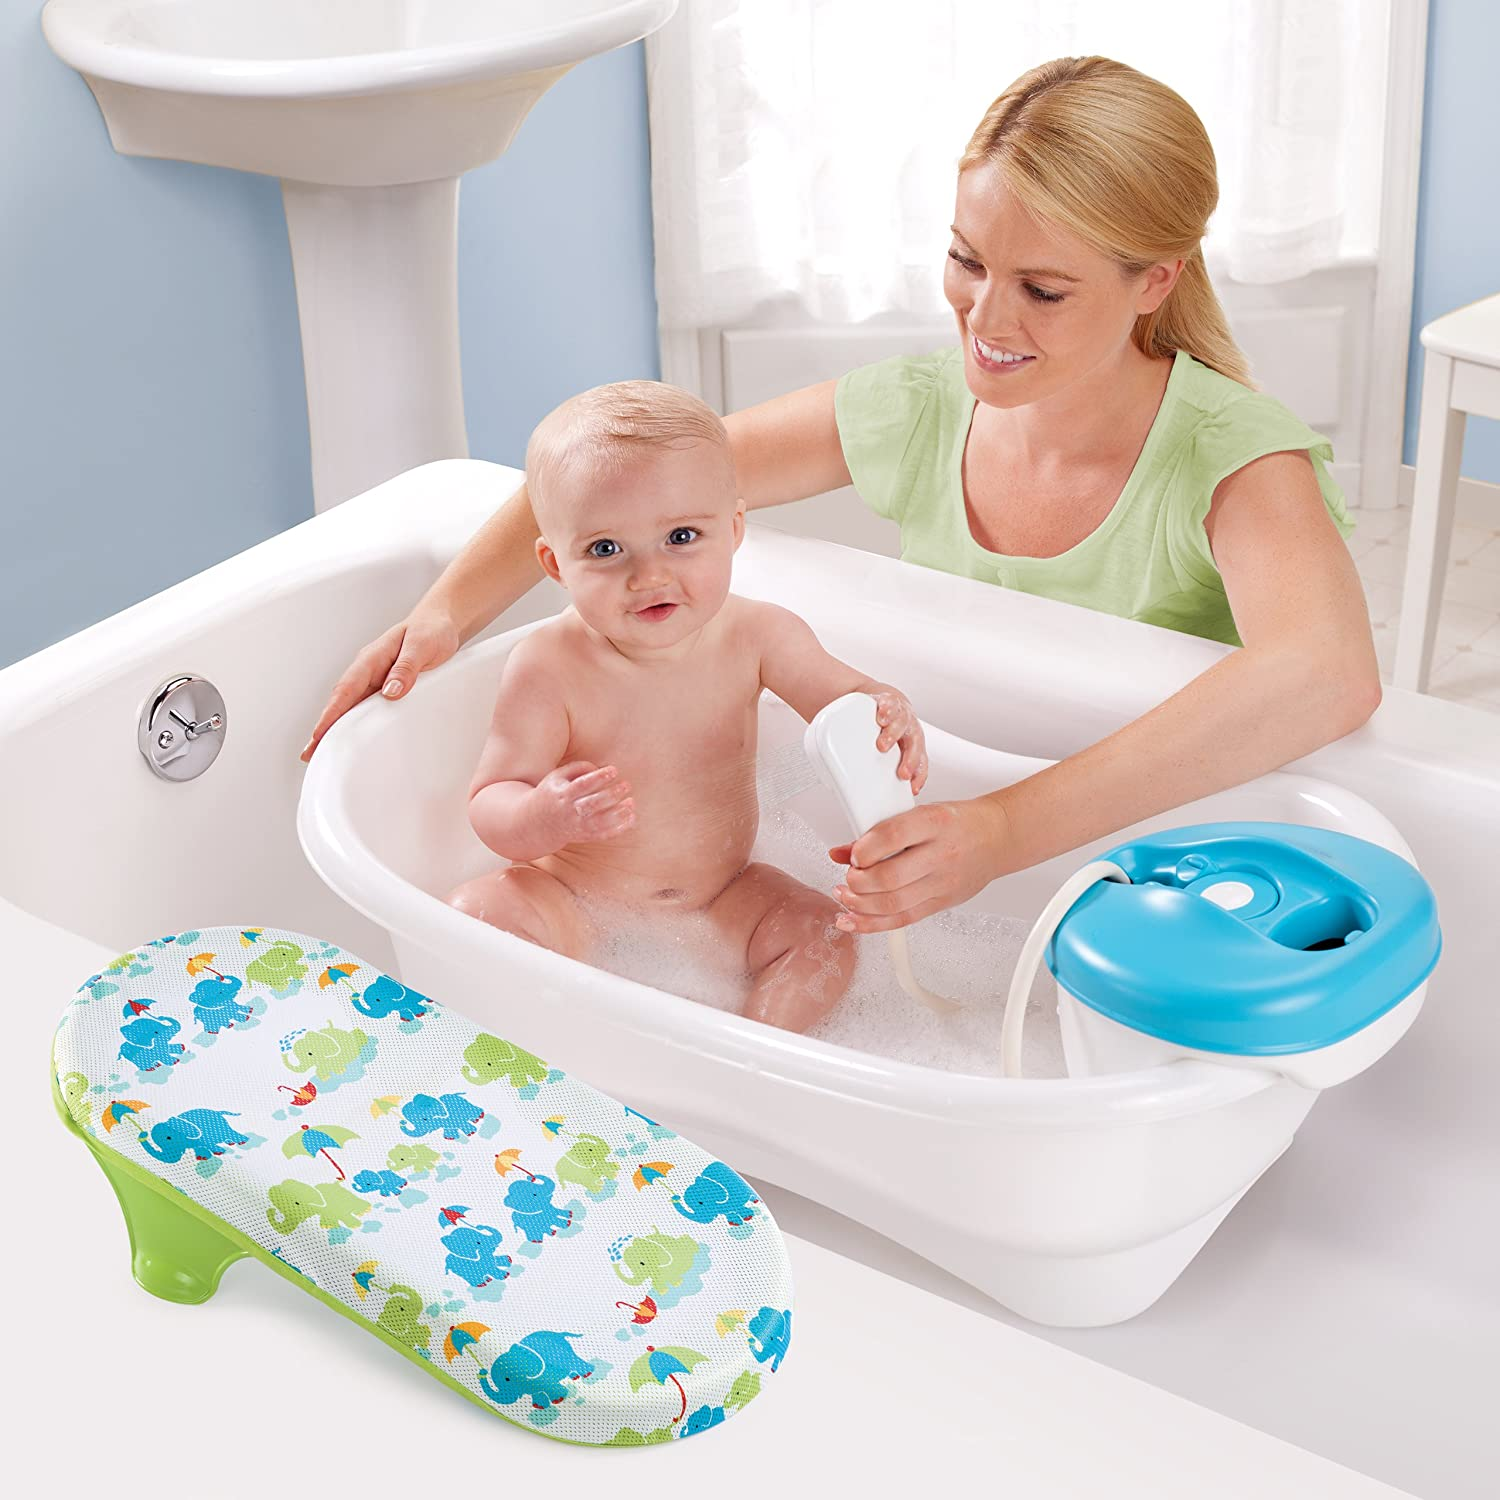 Top 10 Best Large Size Baby Bath Tubs Reviews 2018-2020 on Flipboard